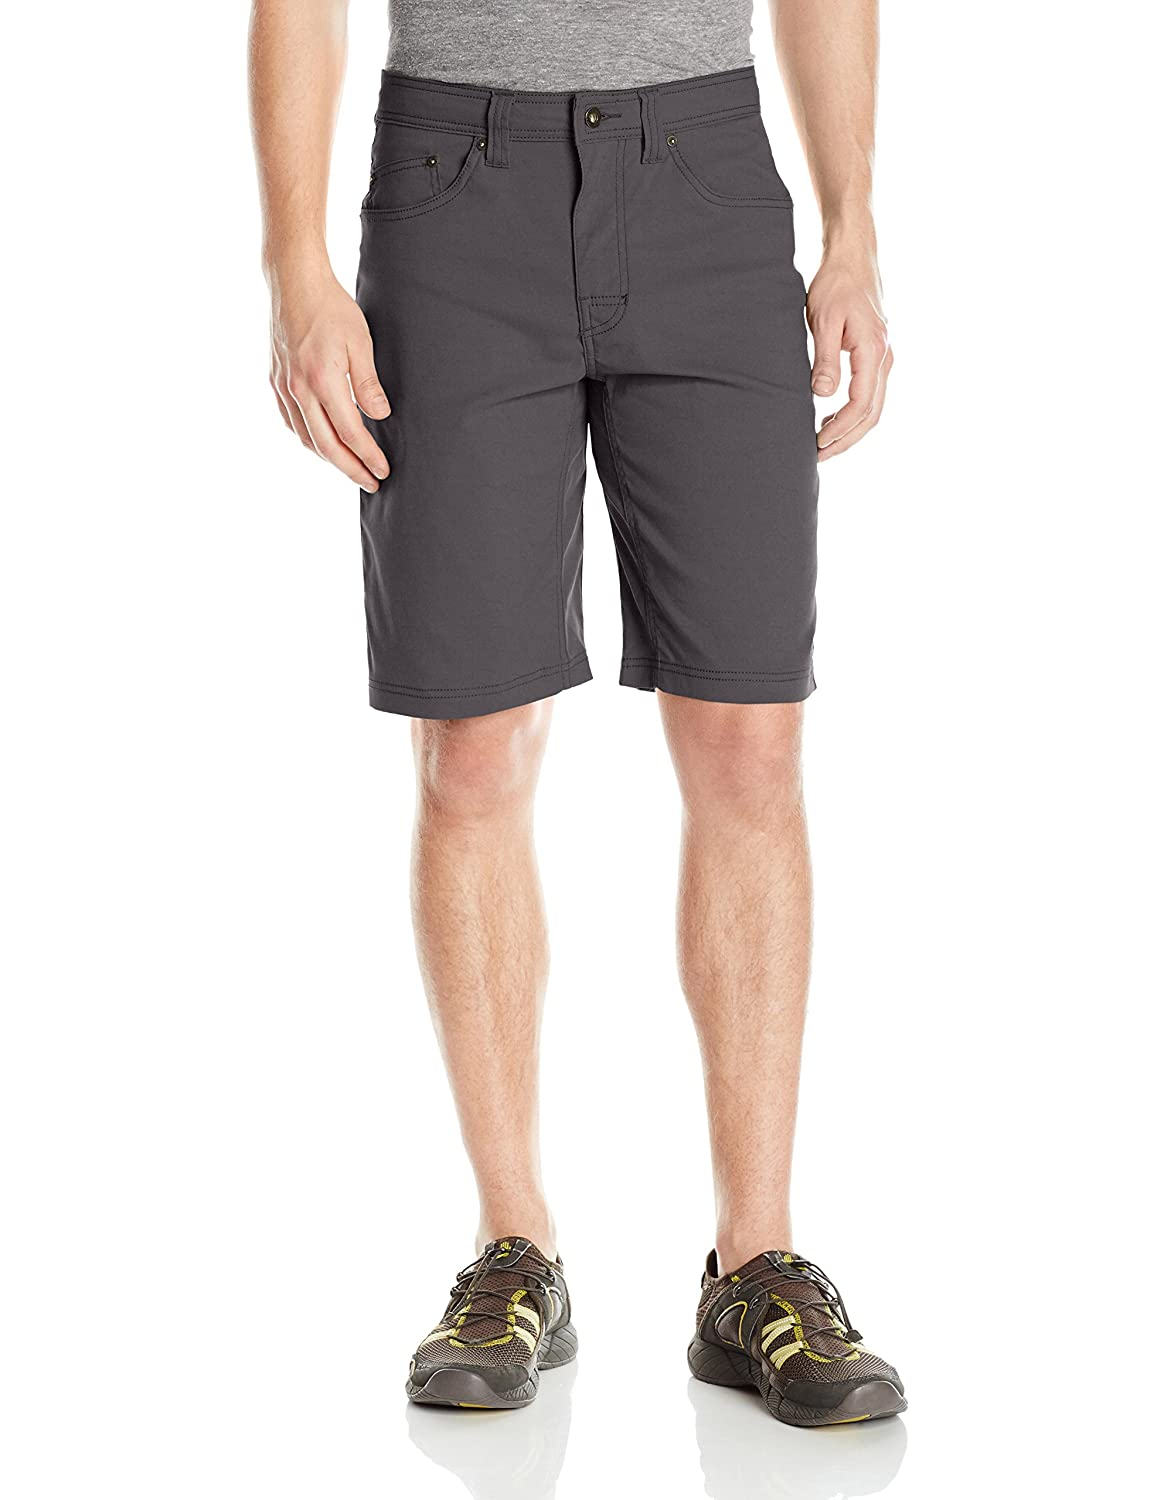 Charcoal 32 prAna Men's Brion Shorts